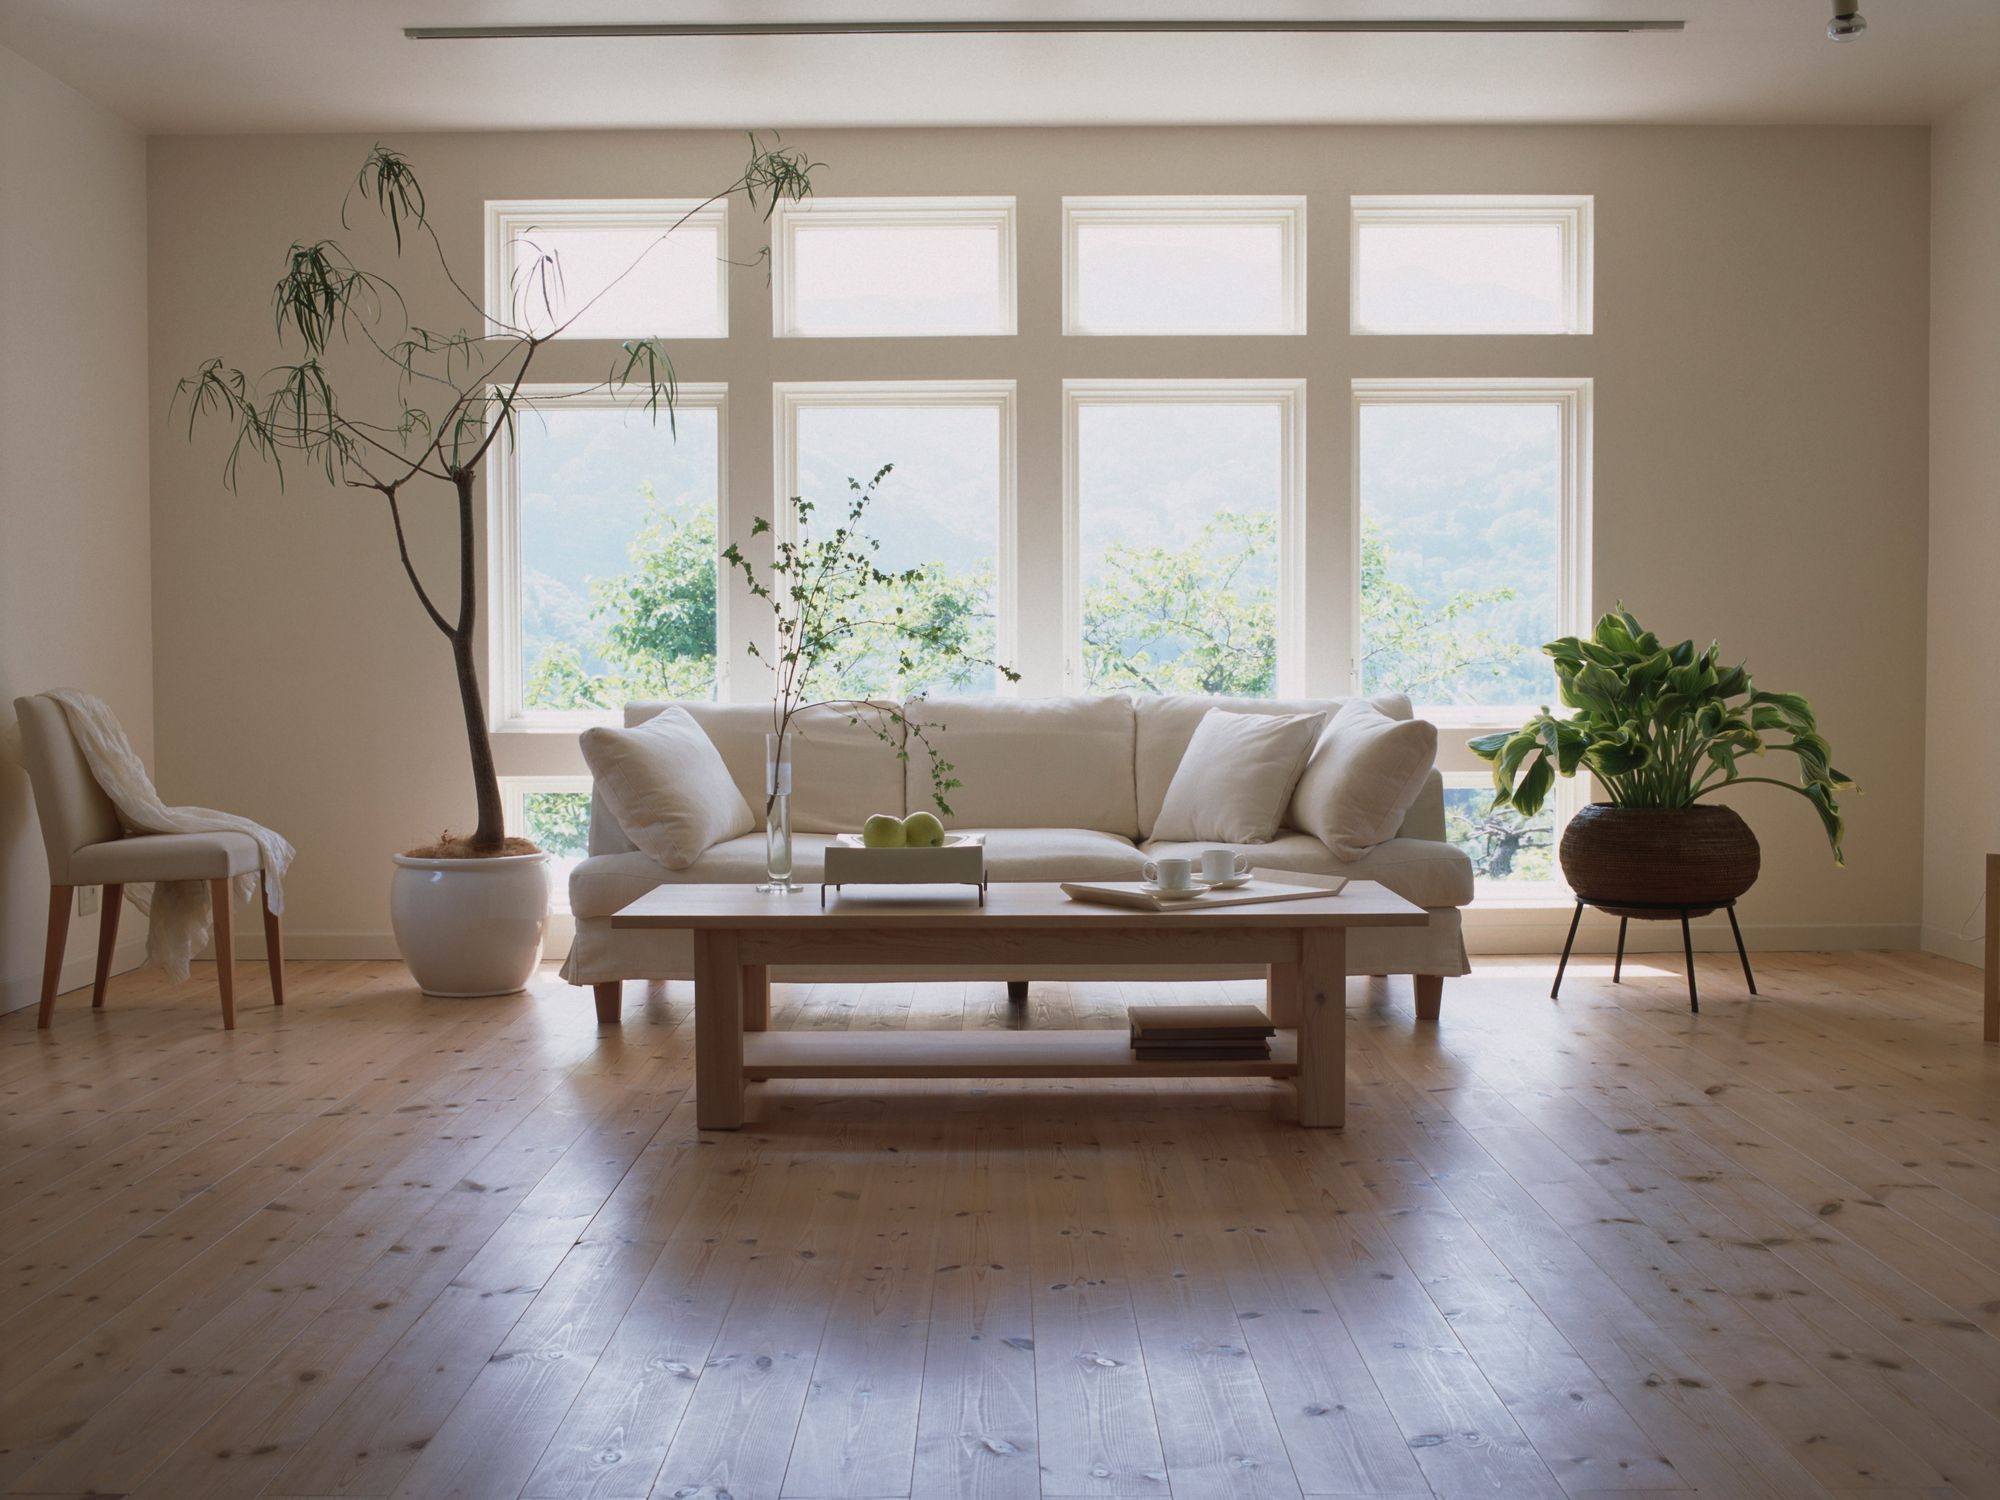 wax stick for hardwood floors of laminate flooring pros and cons inside living room laminate floor gettyimages dexph070 001 58b5cc793df78cdcd8be2938